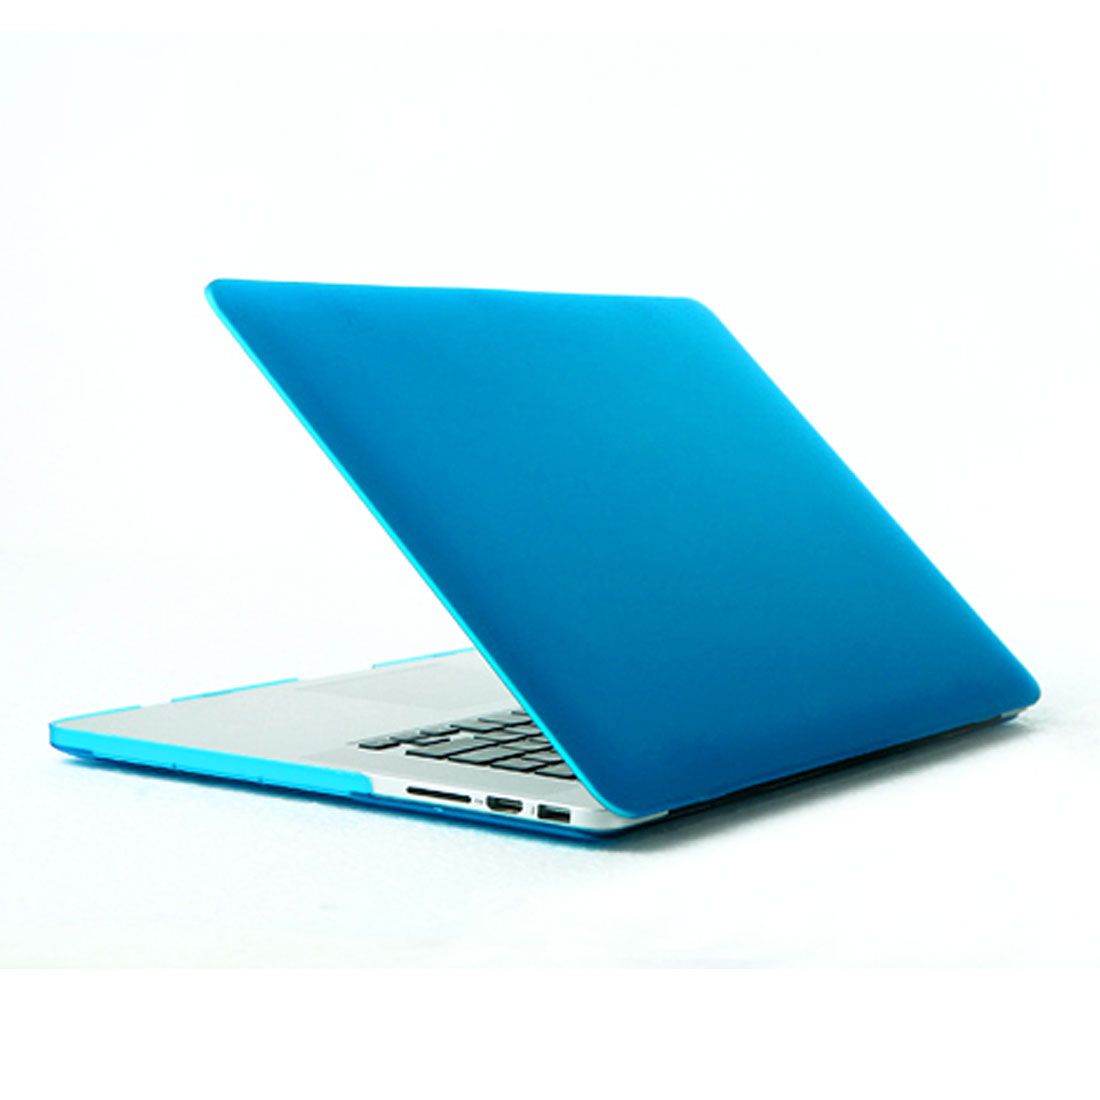 Plastic Hard Shell Cover Protector Sky Blue for MacBook Pro 15 Inch Retina